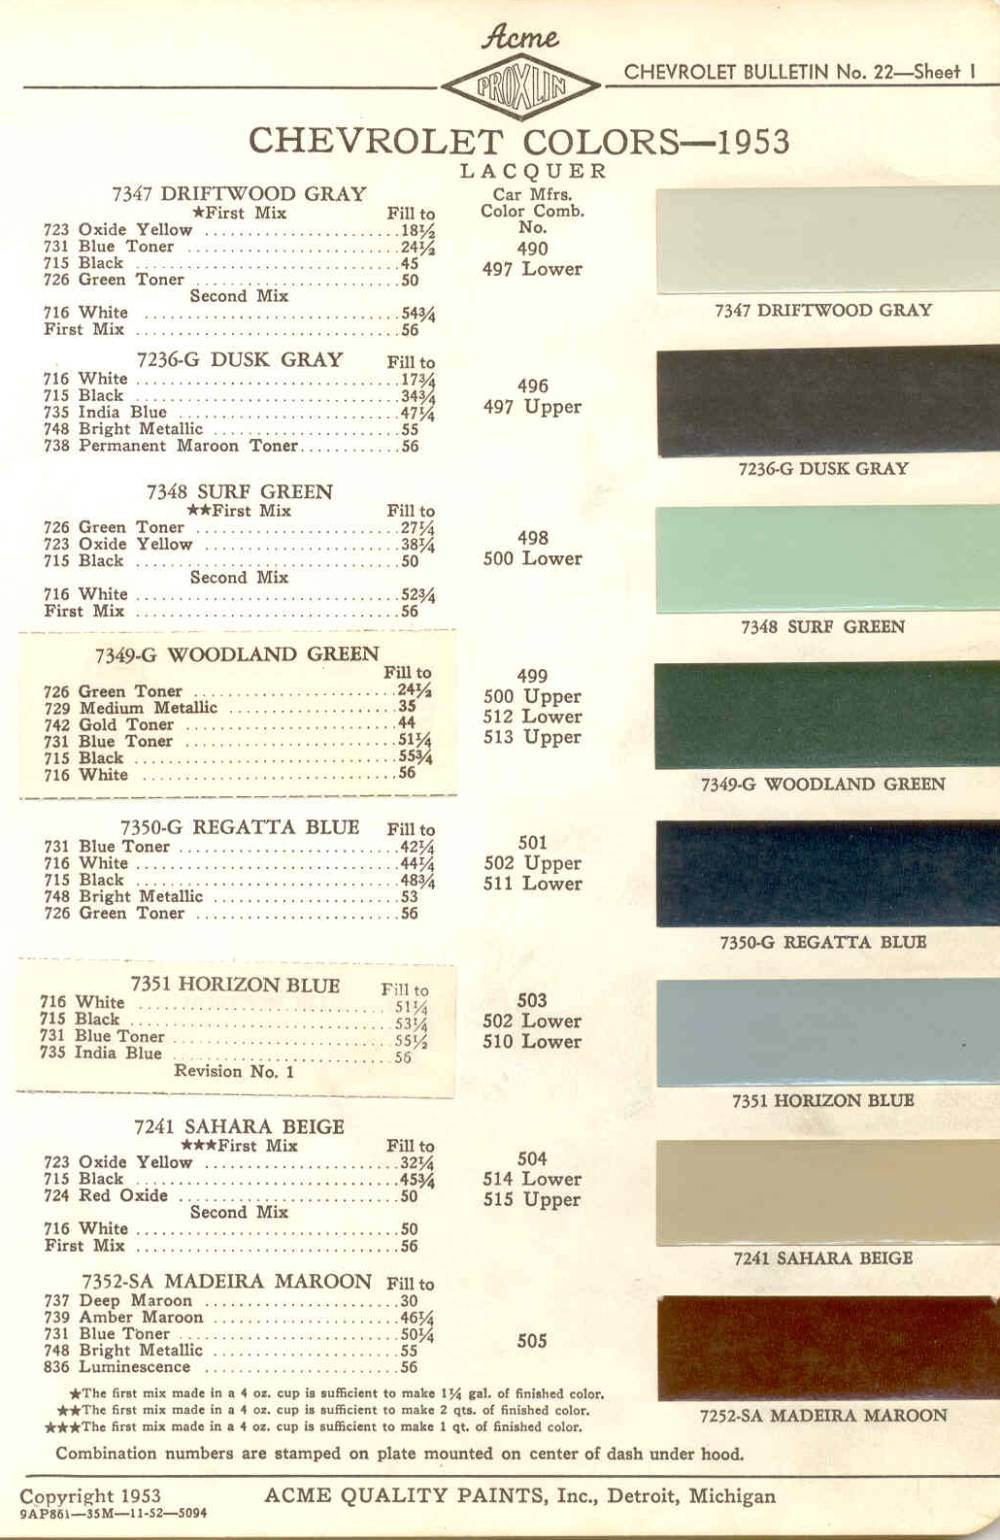 1949 Chevy Truck Paint Colors as well 1954 Chevy Truck in addition 1953 Chevy Truck Paint Colors together with 1954 Chevy Pickup Truck Paint moreover 1954 Chevy Truck Paint Colors. on 1954 chevrolet truck paint colors